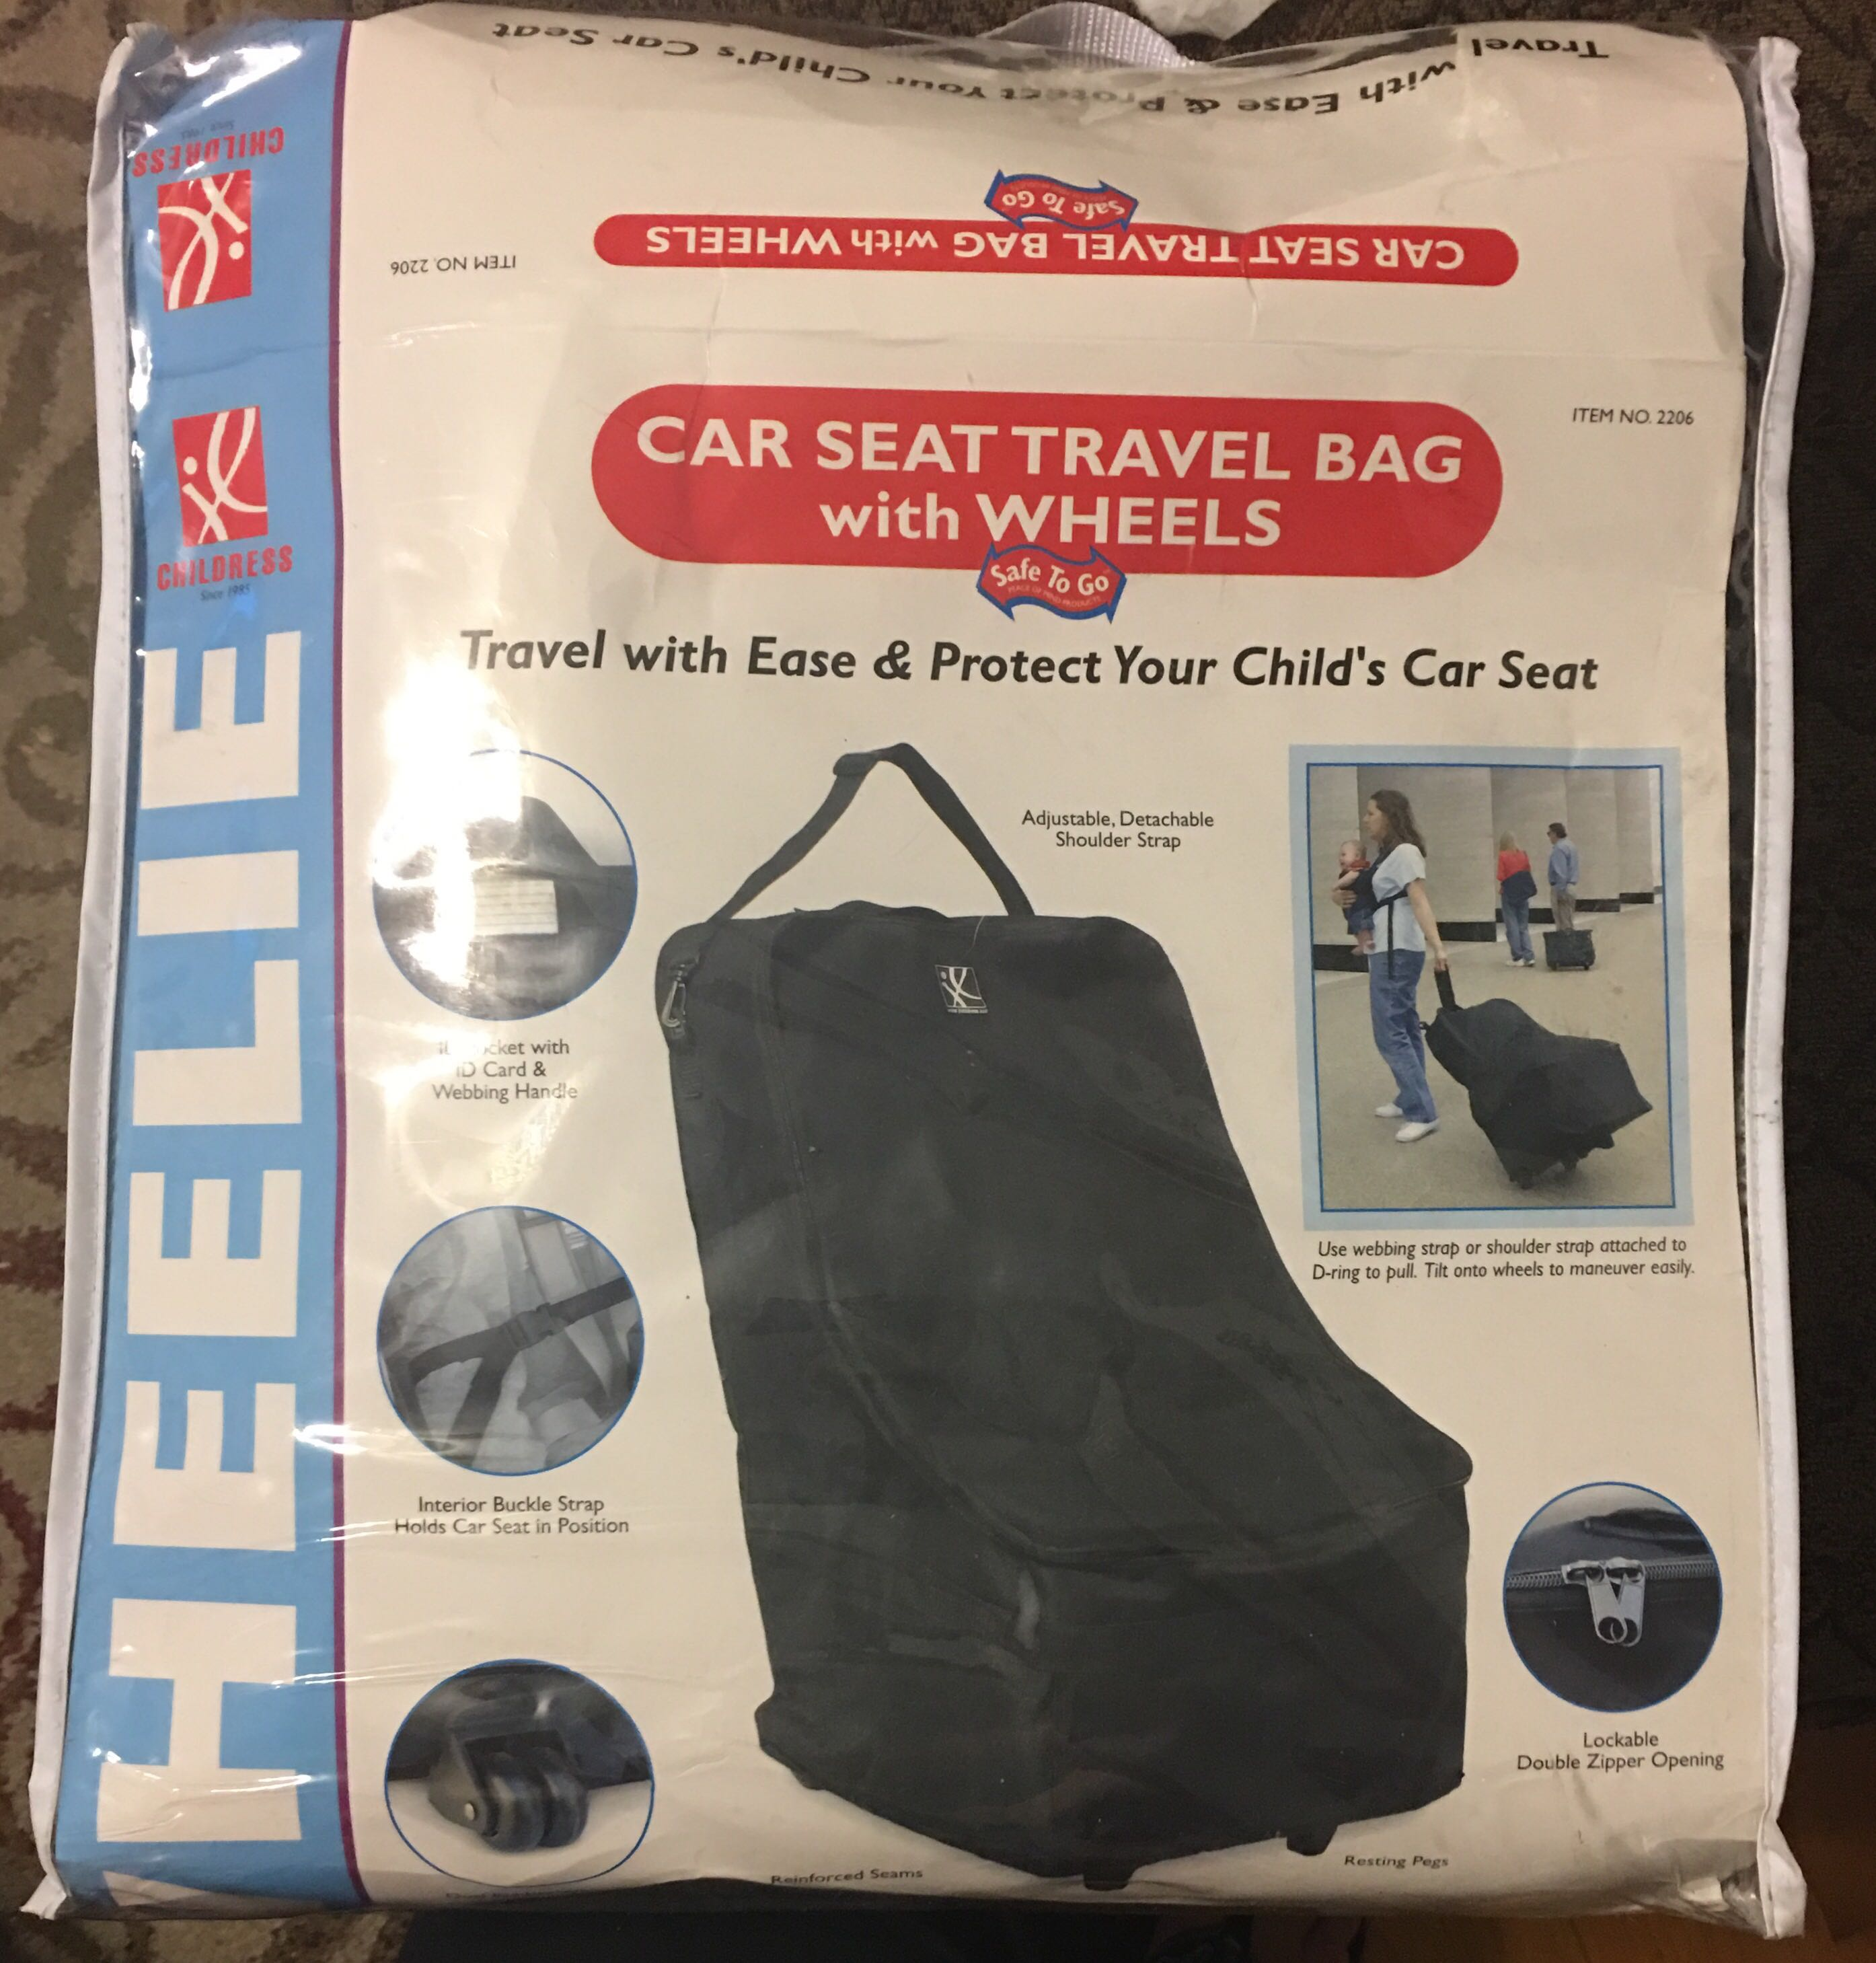 Car seat travel bag with wheels